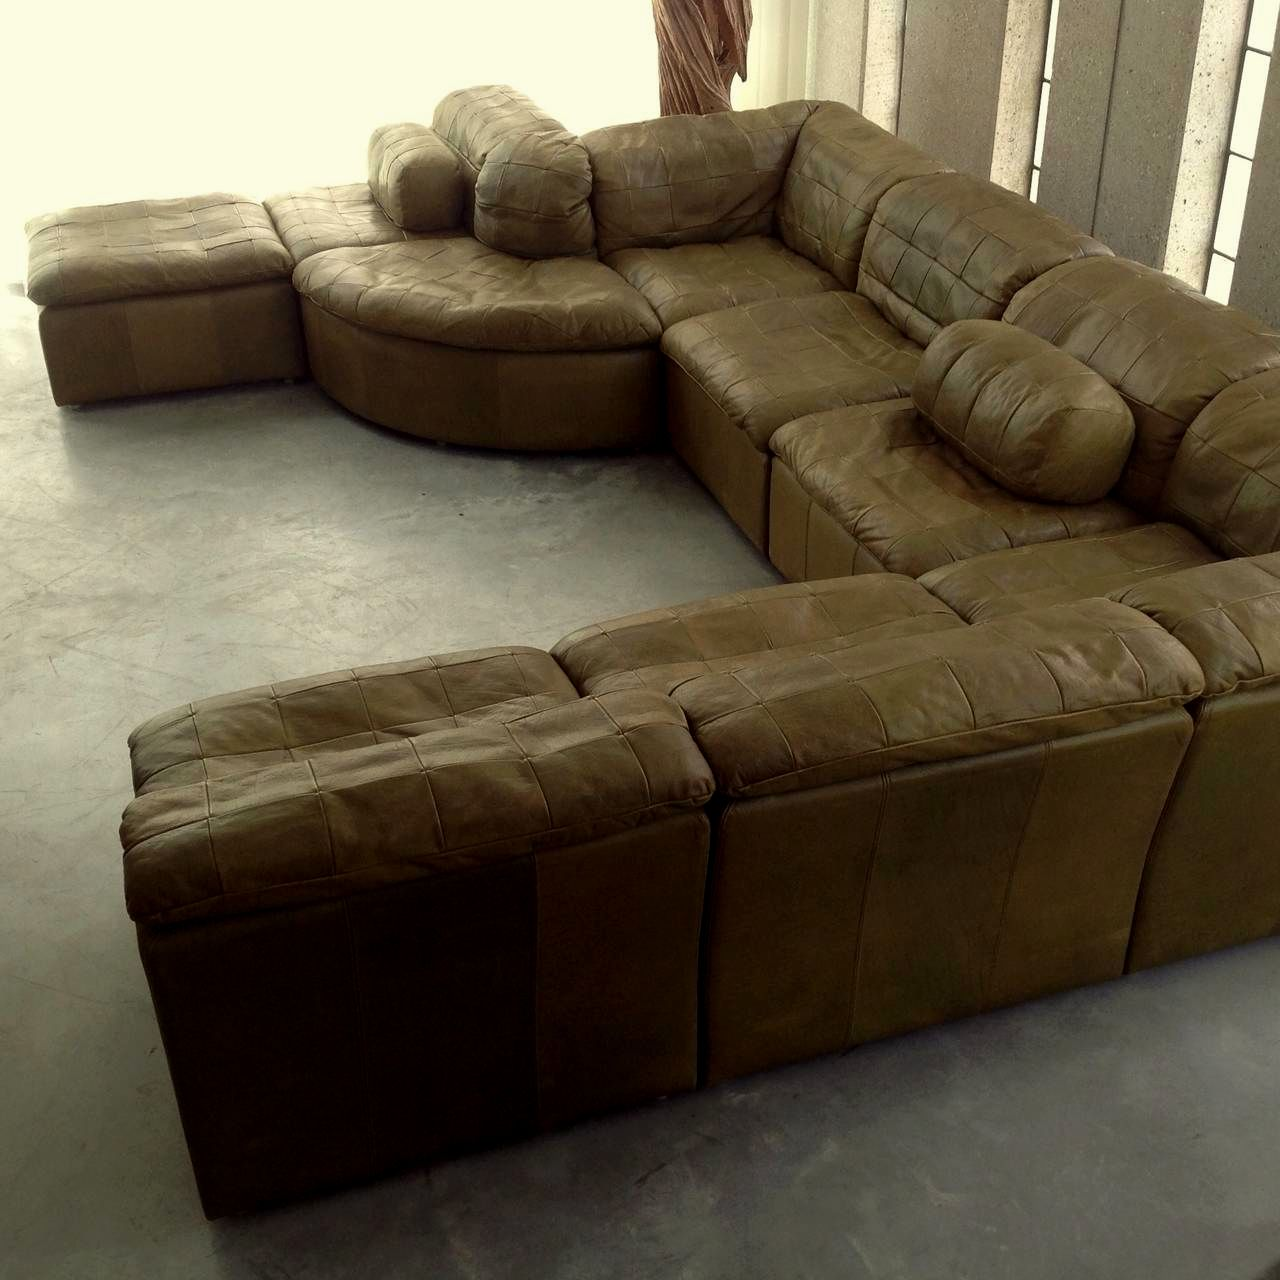 excellent black sectional sofas image-Cute Black Sectional sofas Concept